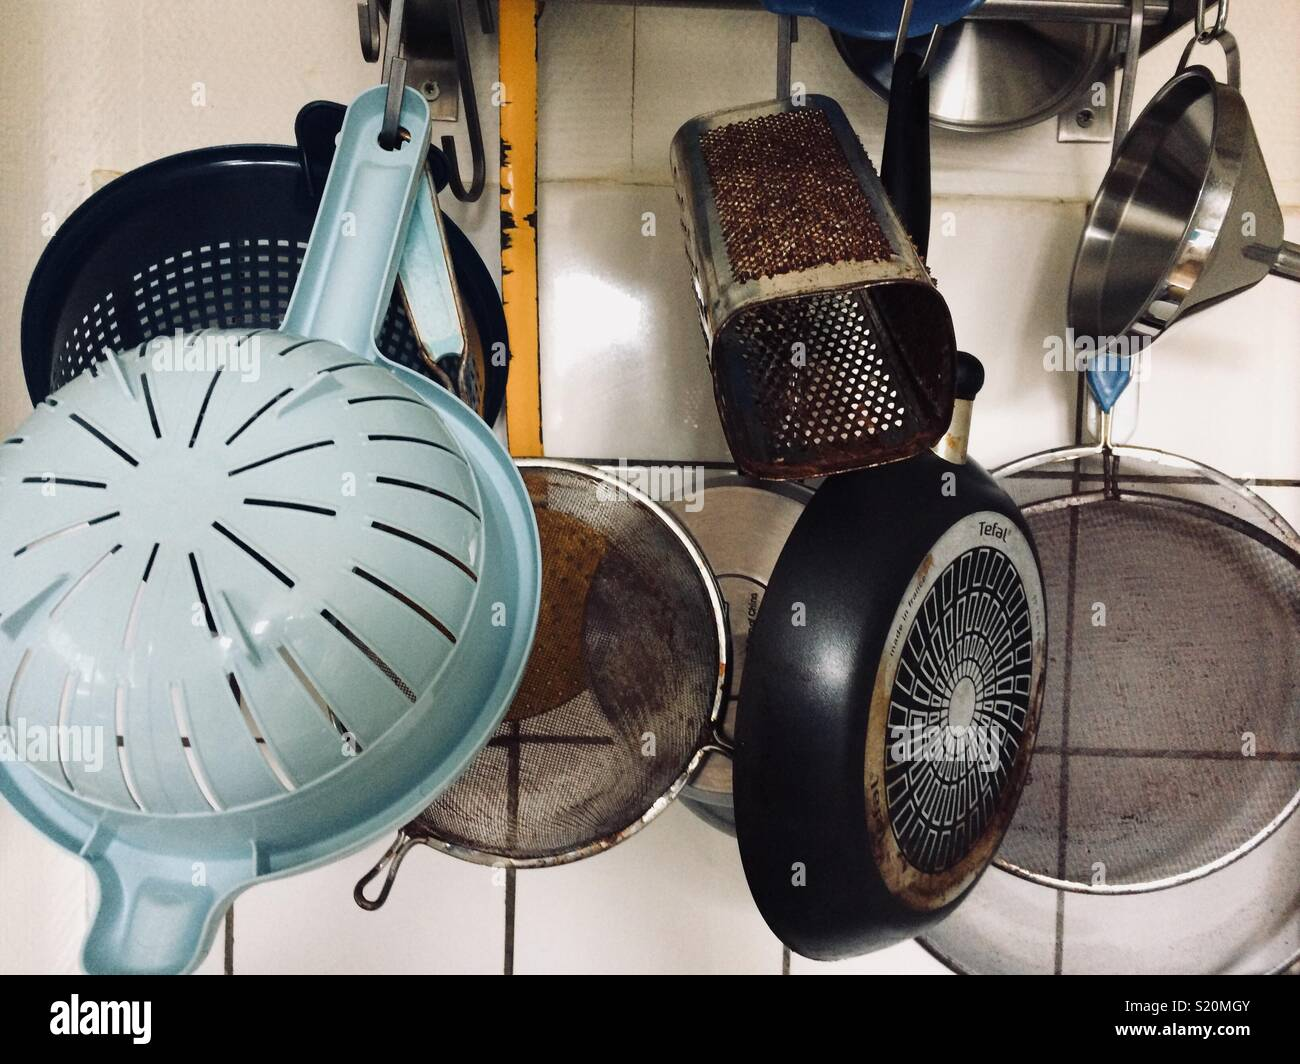 Kitchen utensils hanging in a kitchen - Stock Image